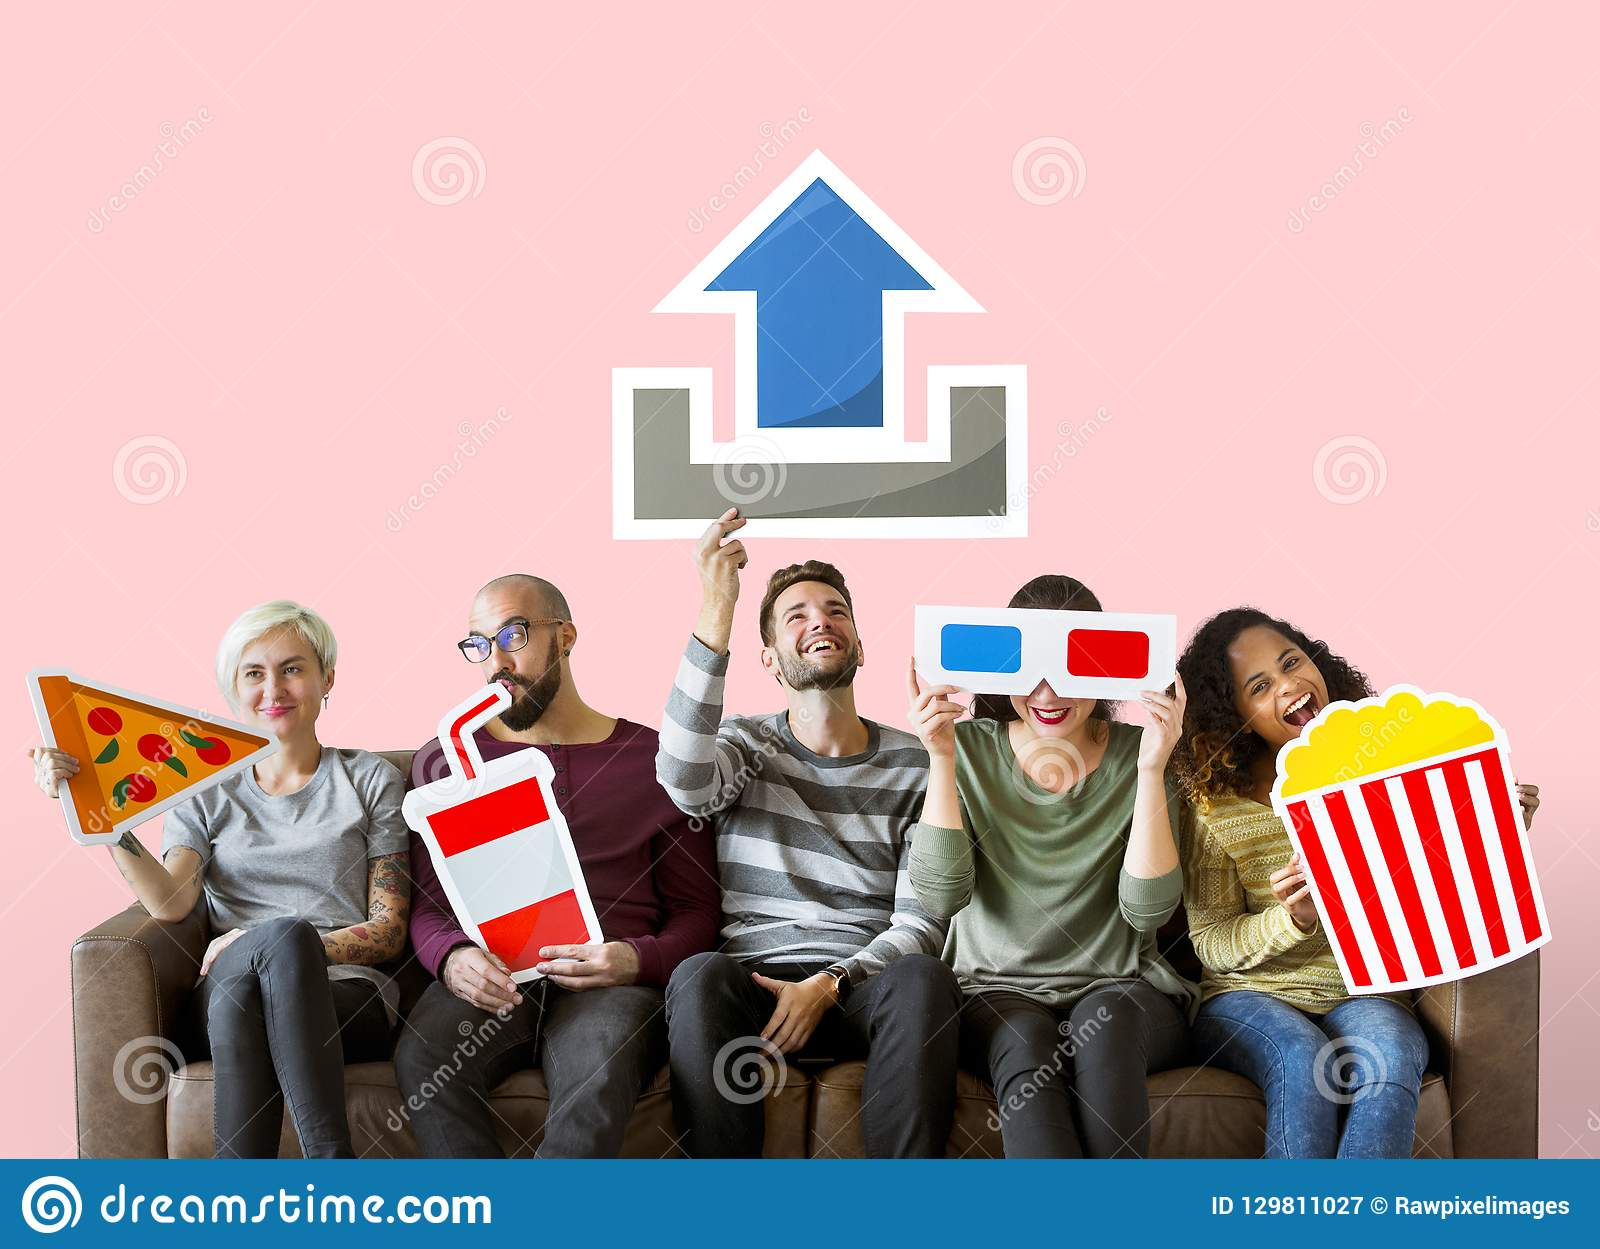 Group of diverse friends and movie upload concept